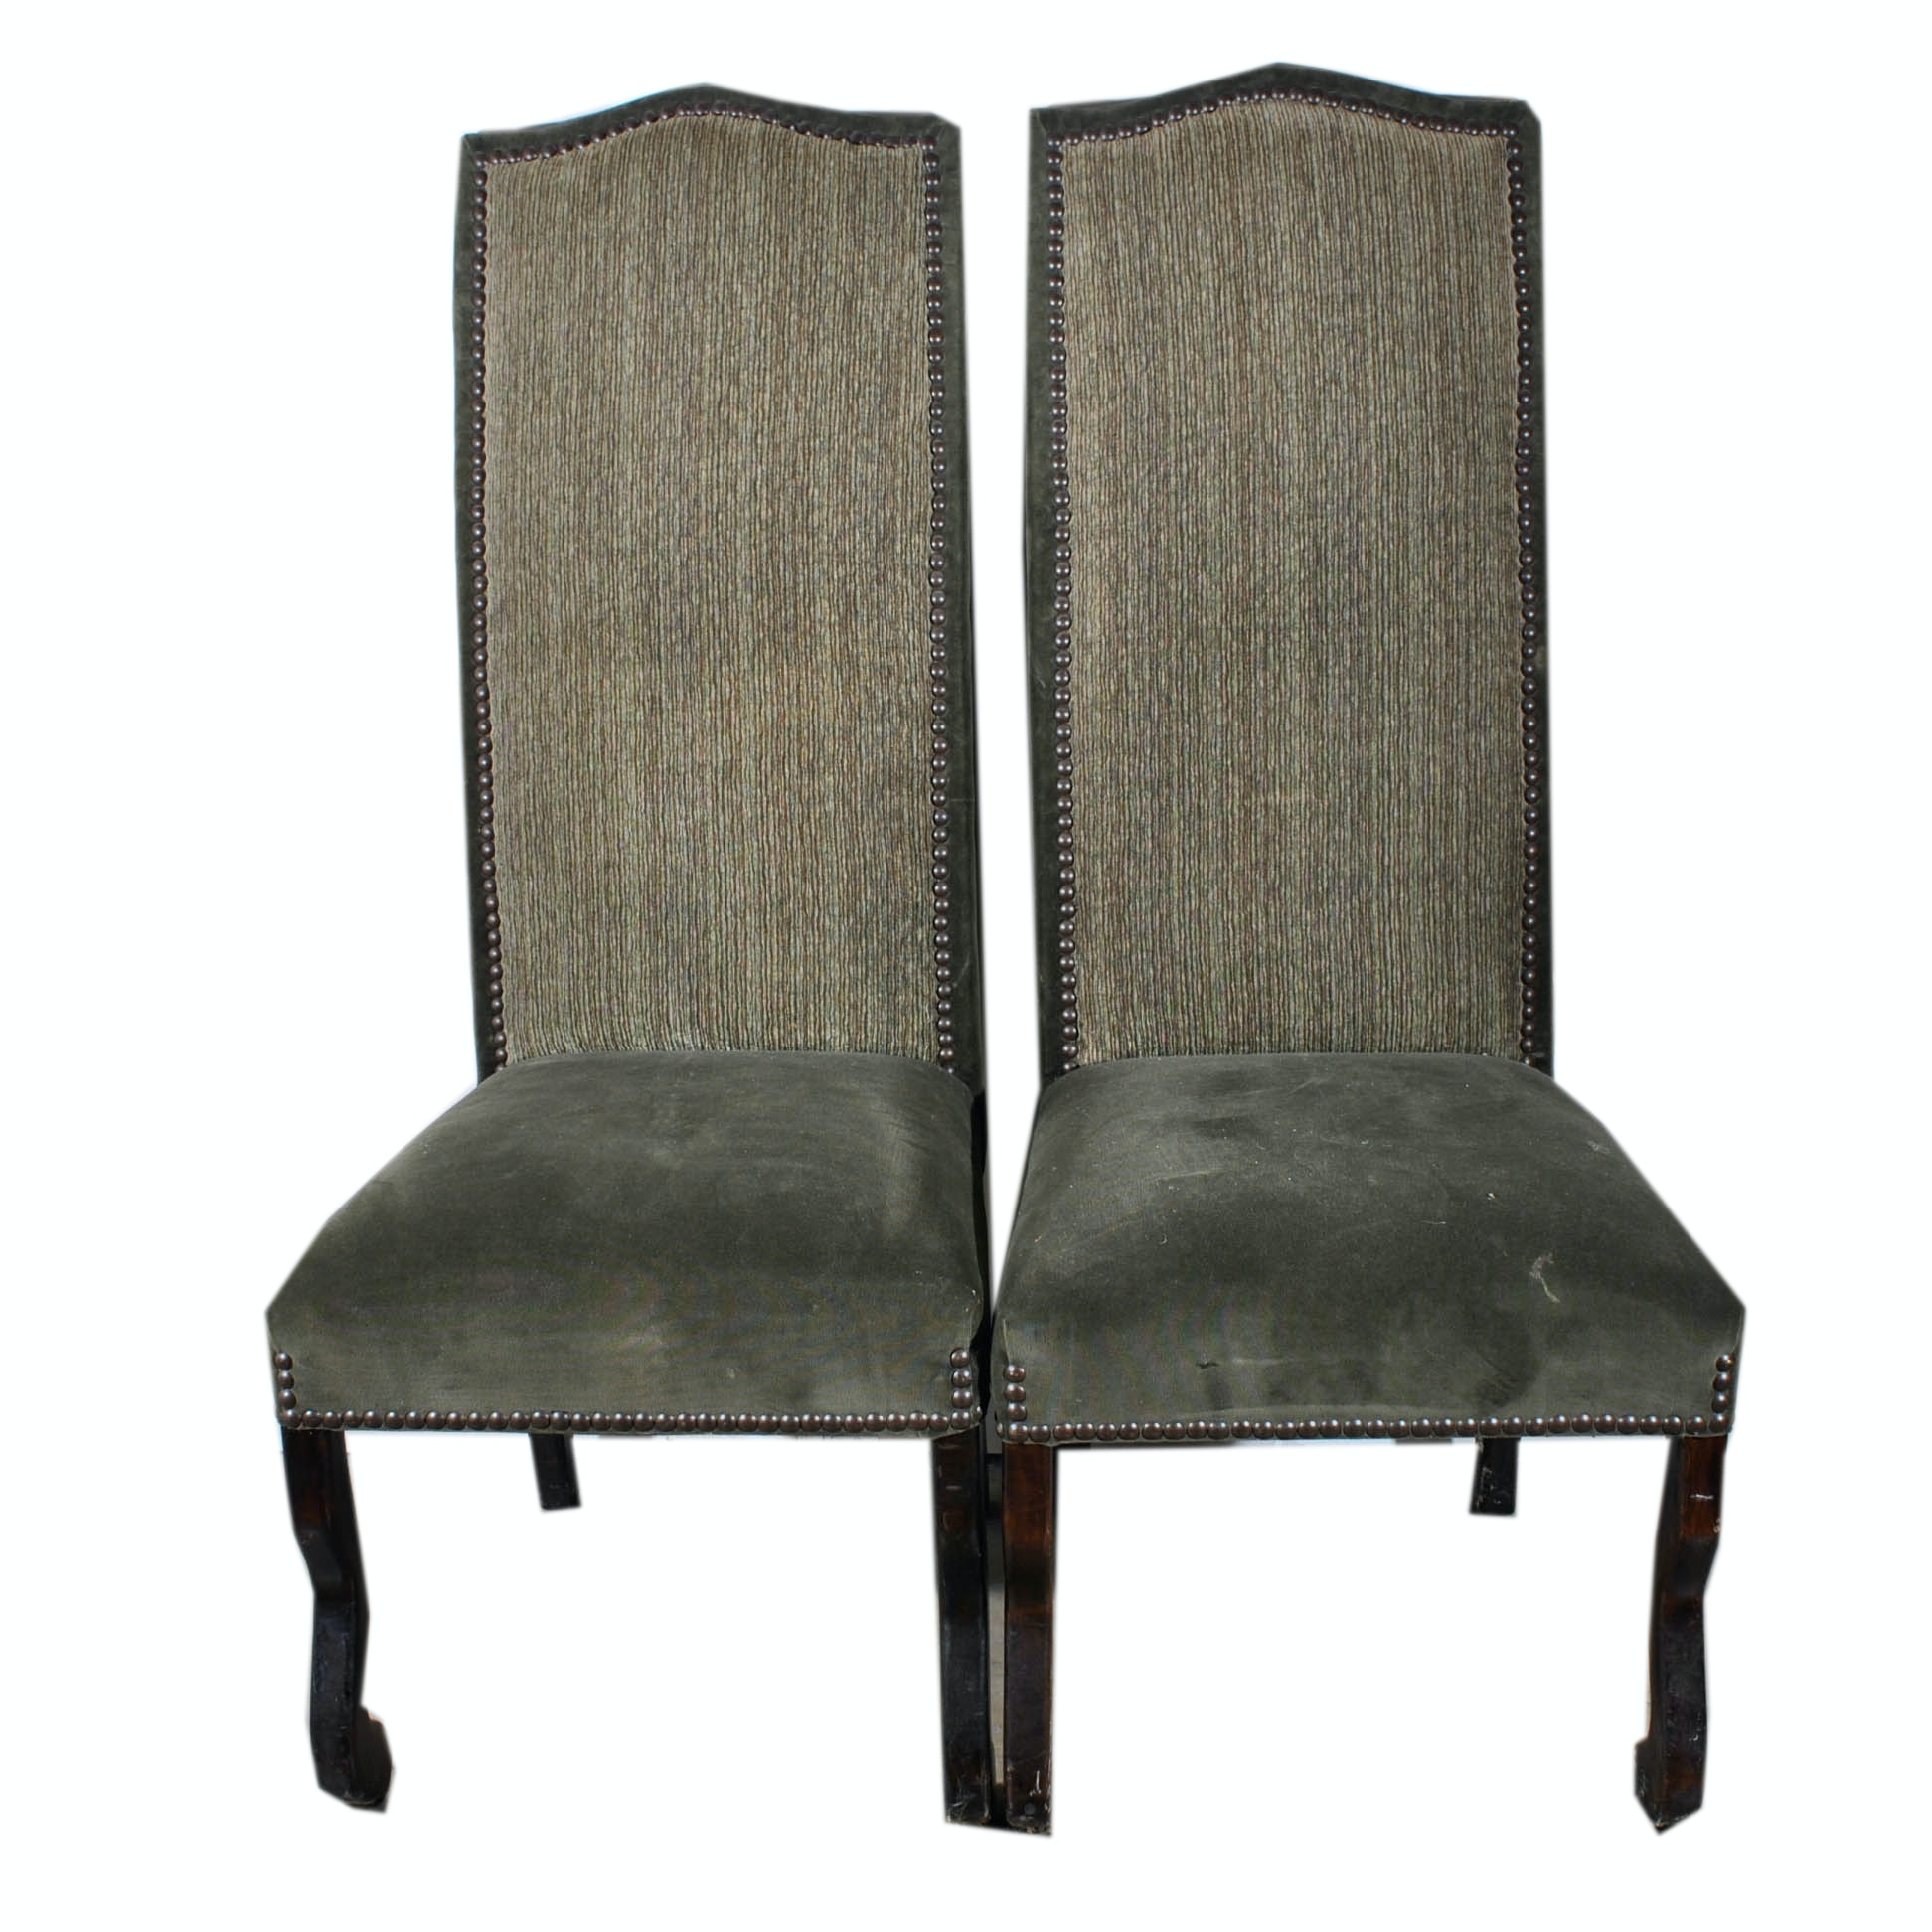 Vintage Upholstered Side Chairs